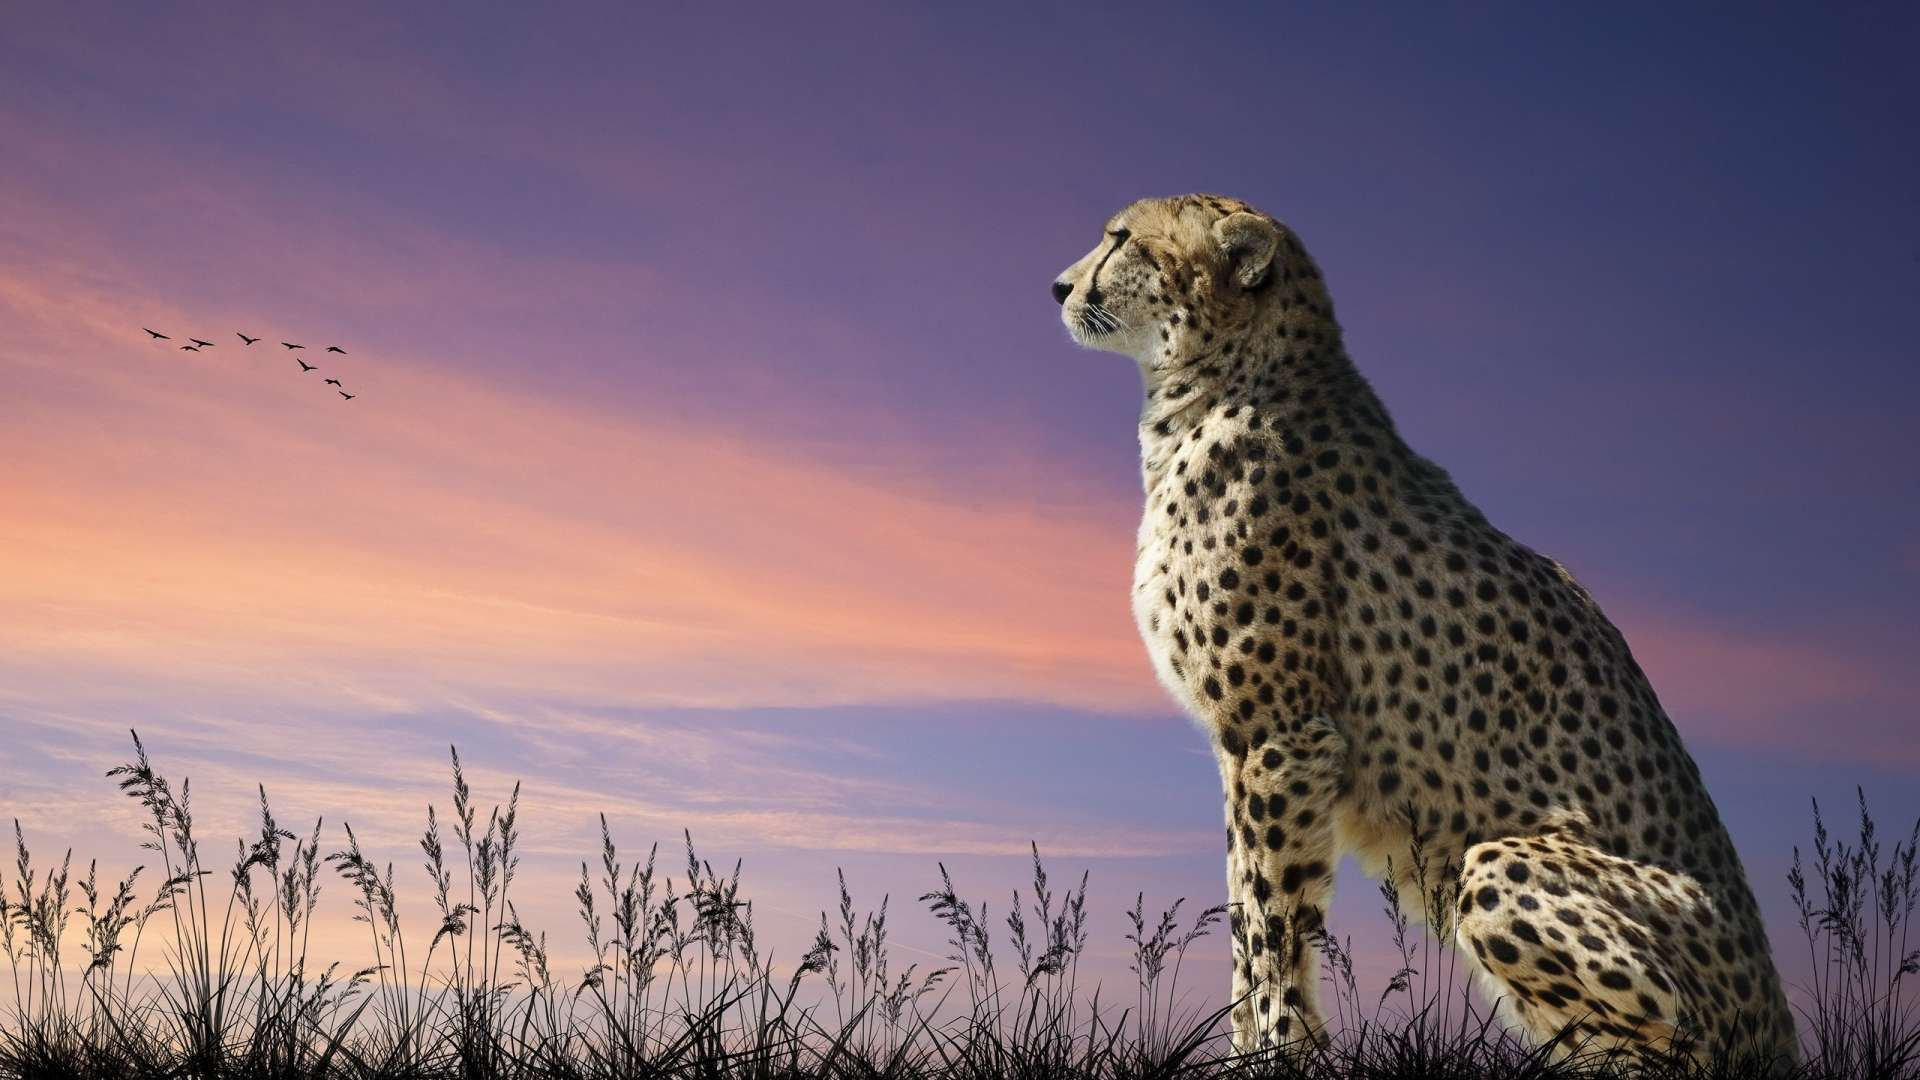 10 Latest Cool Wallpapers Of Animals Full Hd 1080p For Pc: HD Cheetah Wallpaper